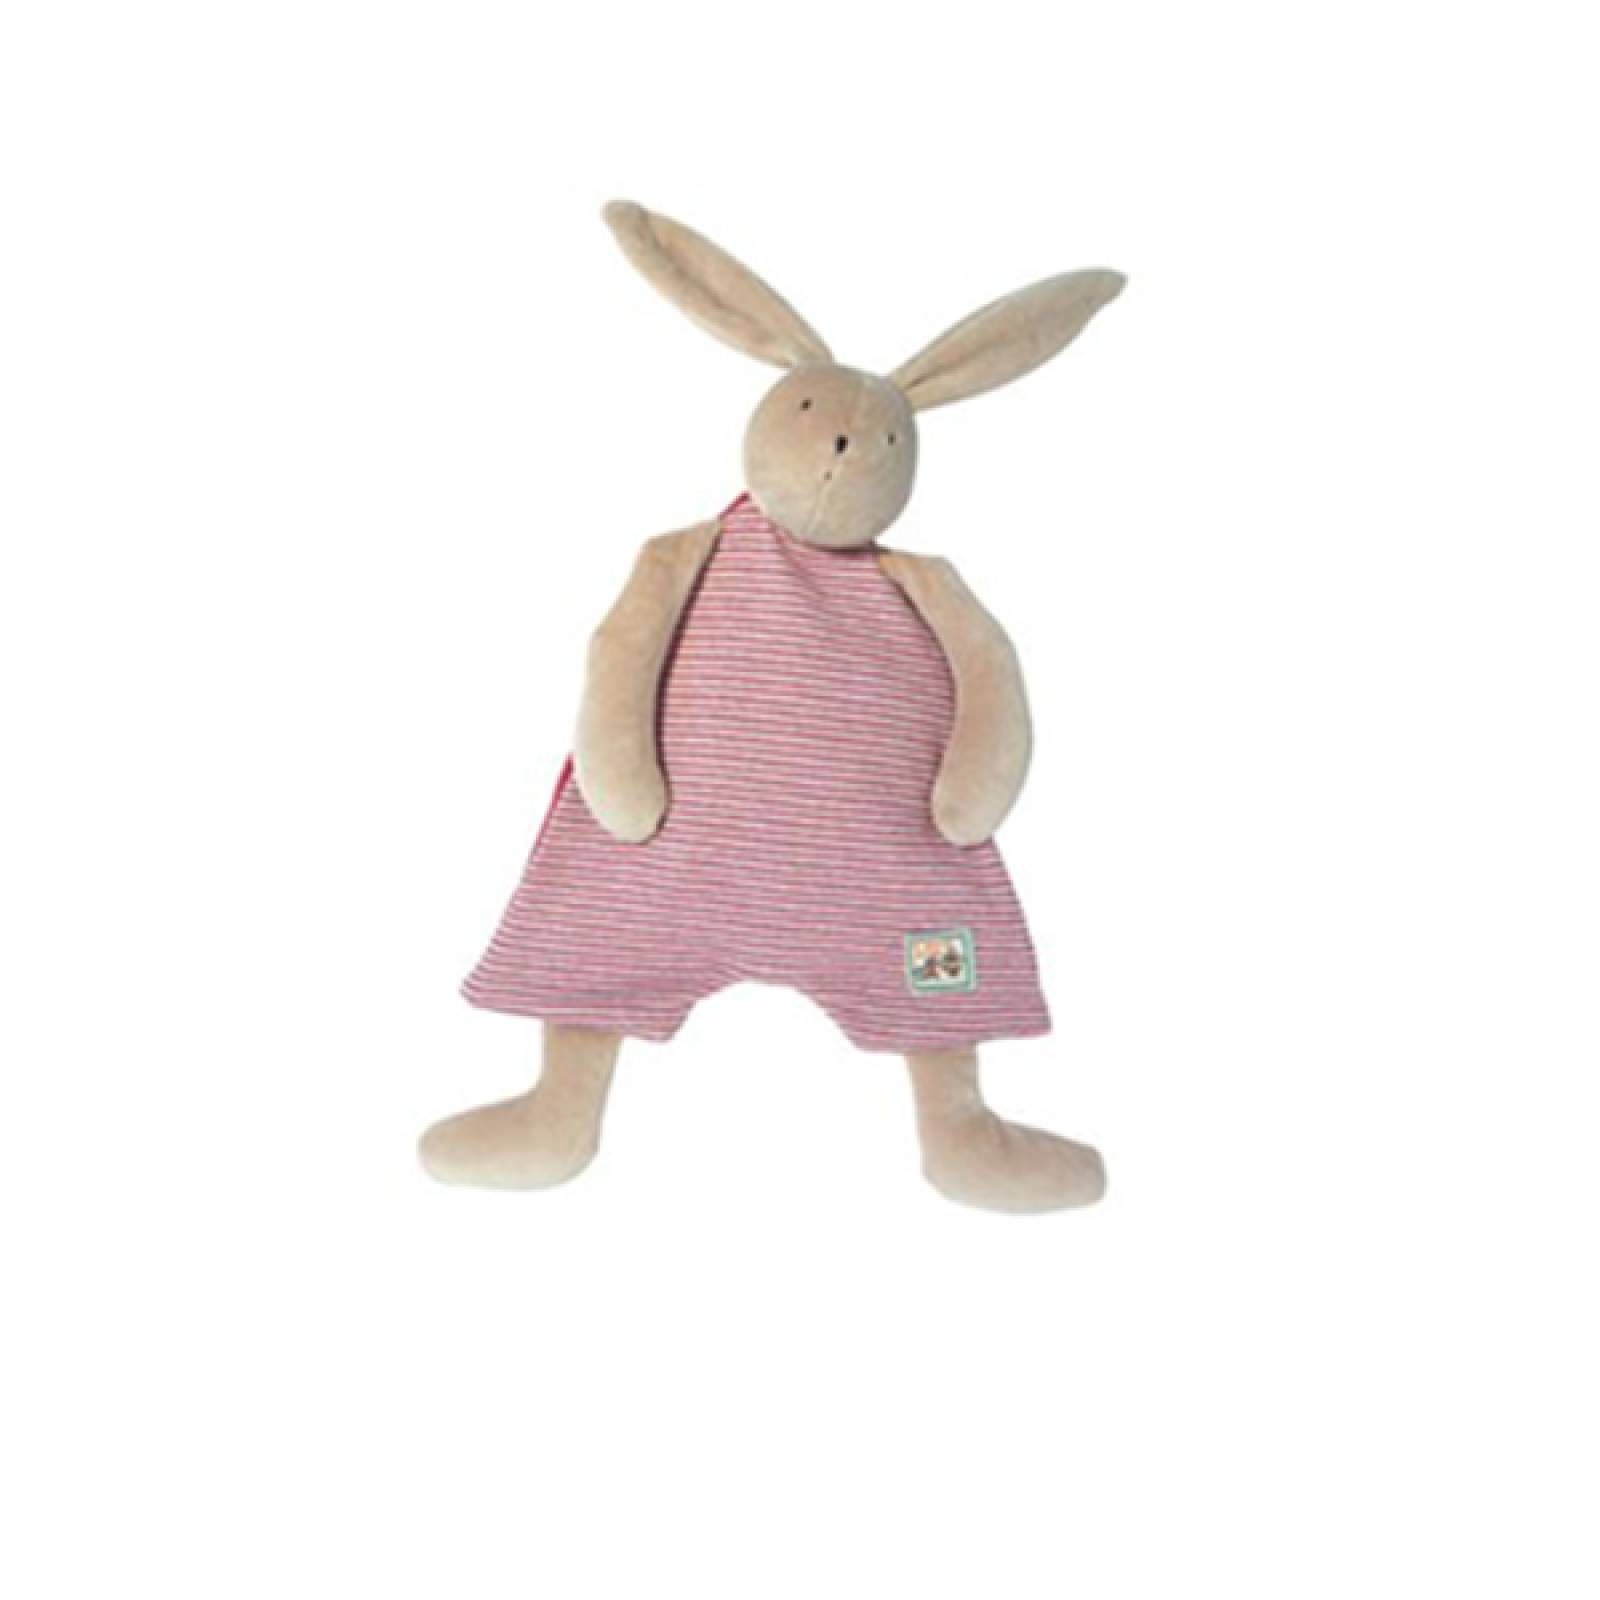 Sylvain Comforter Rabbit Moulin Roty Soft Toy 33cm